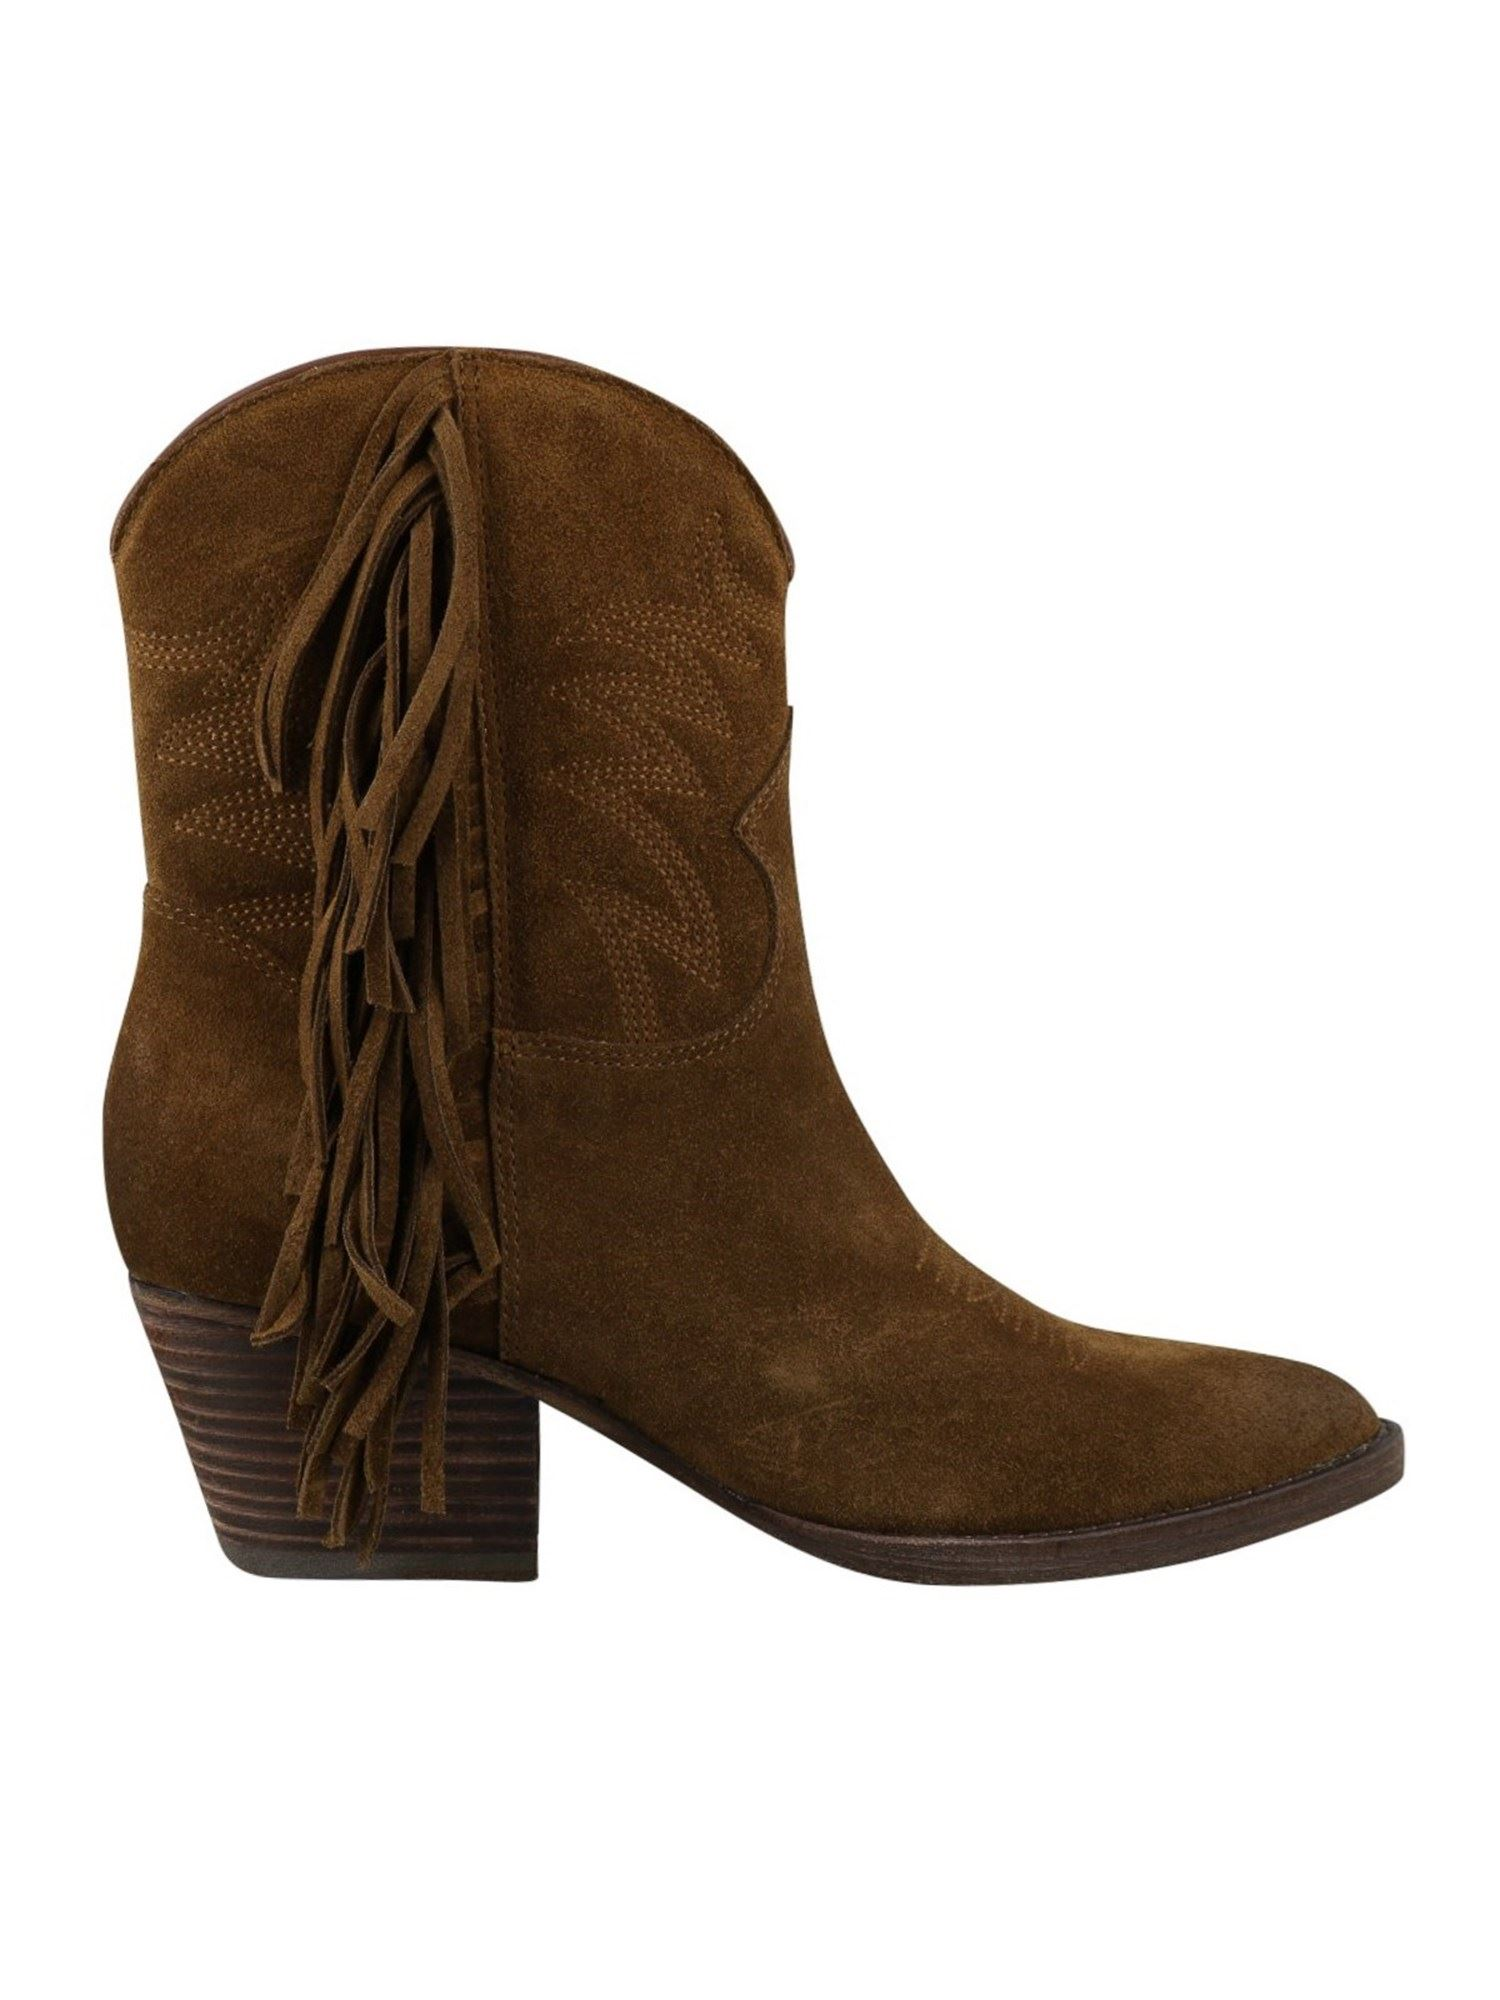 Ash FURIOUS ANKLE BOOTS IN BROWN